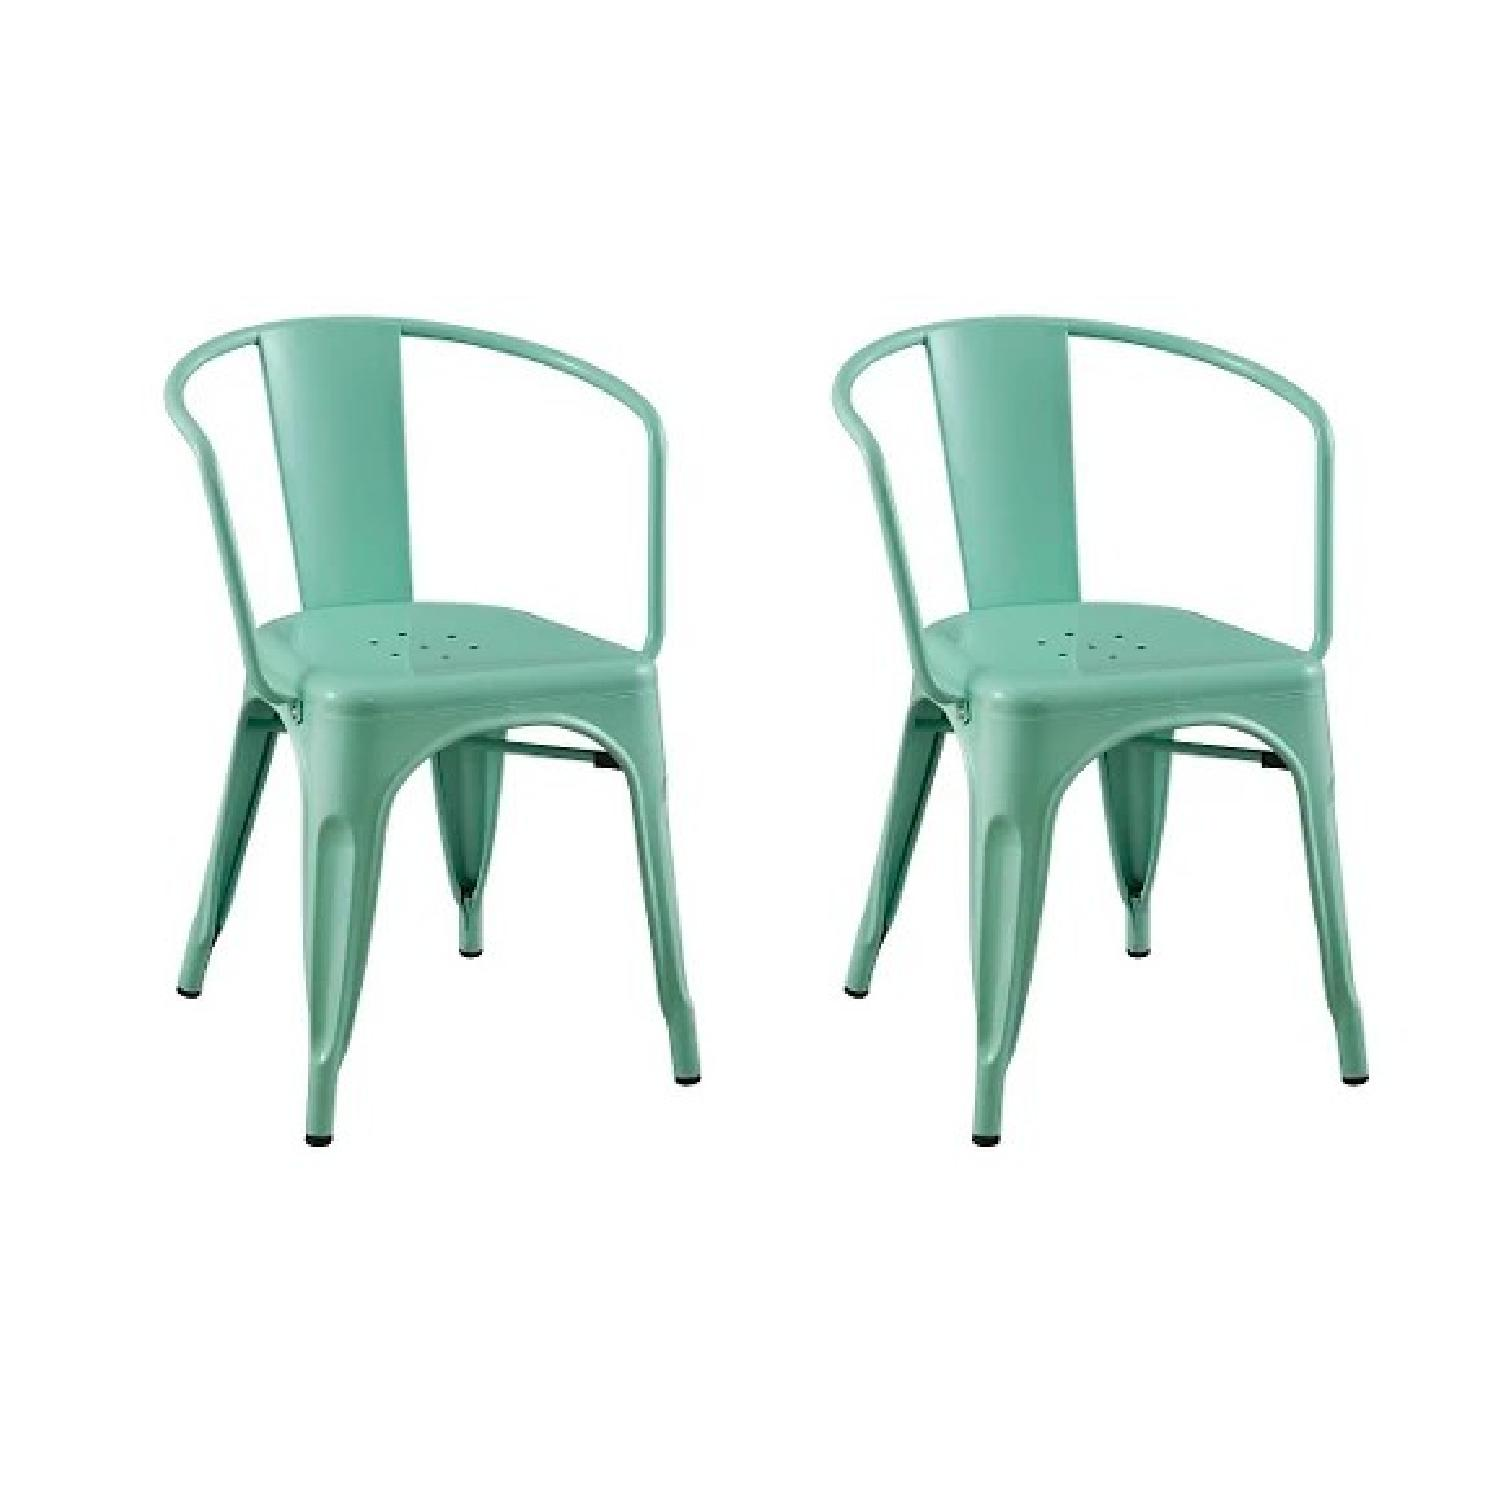 Target Carlisle Metal Dining Chairs in Mint Green-2